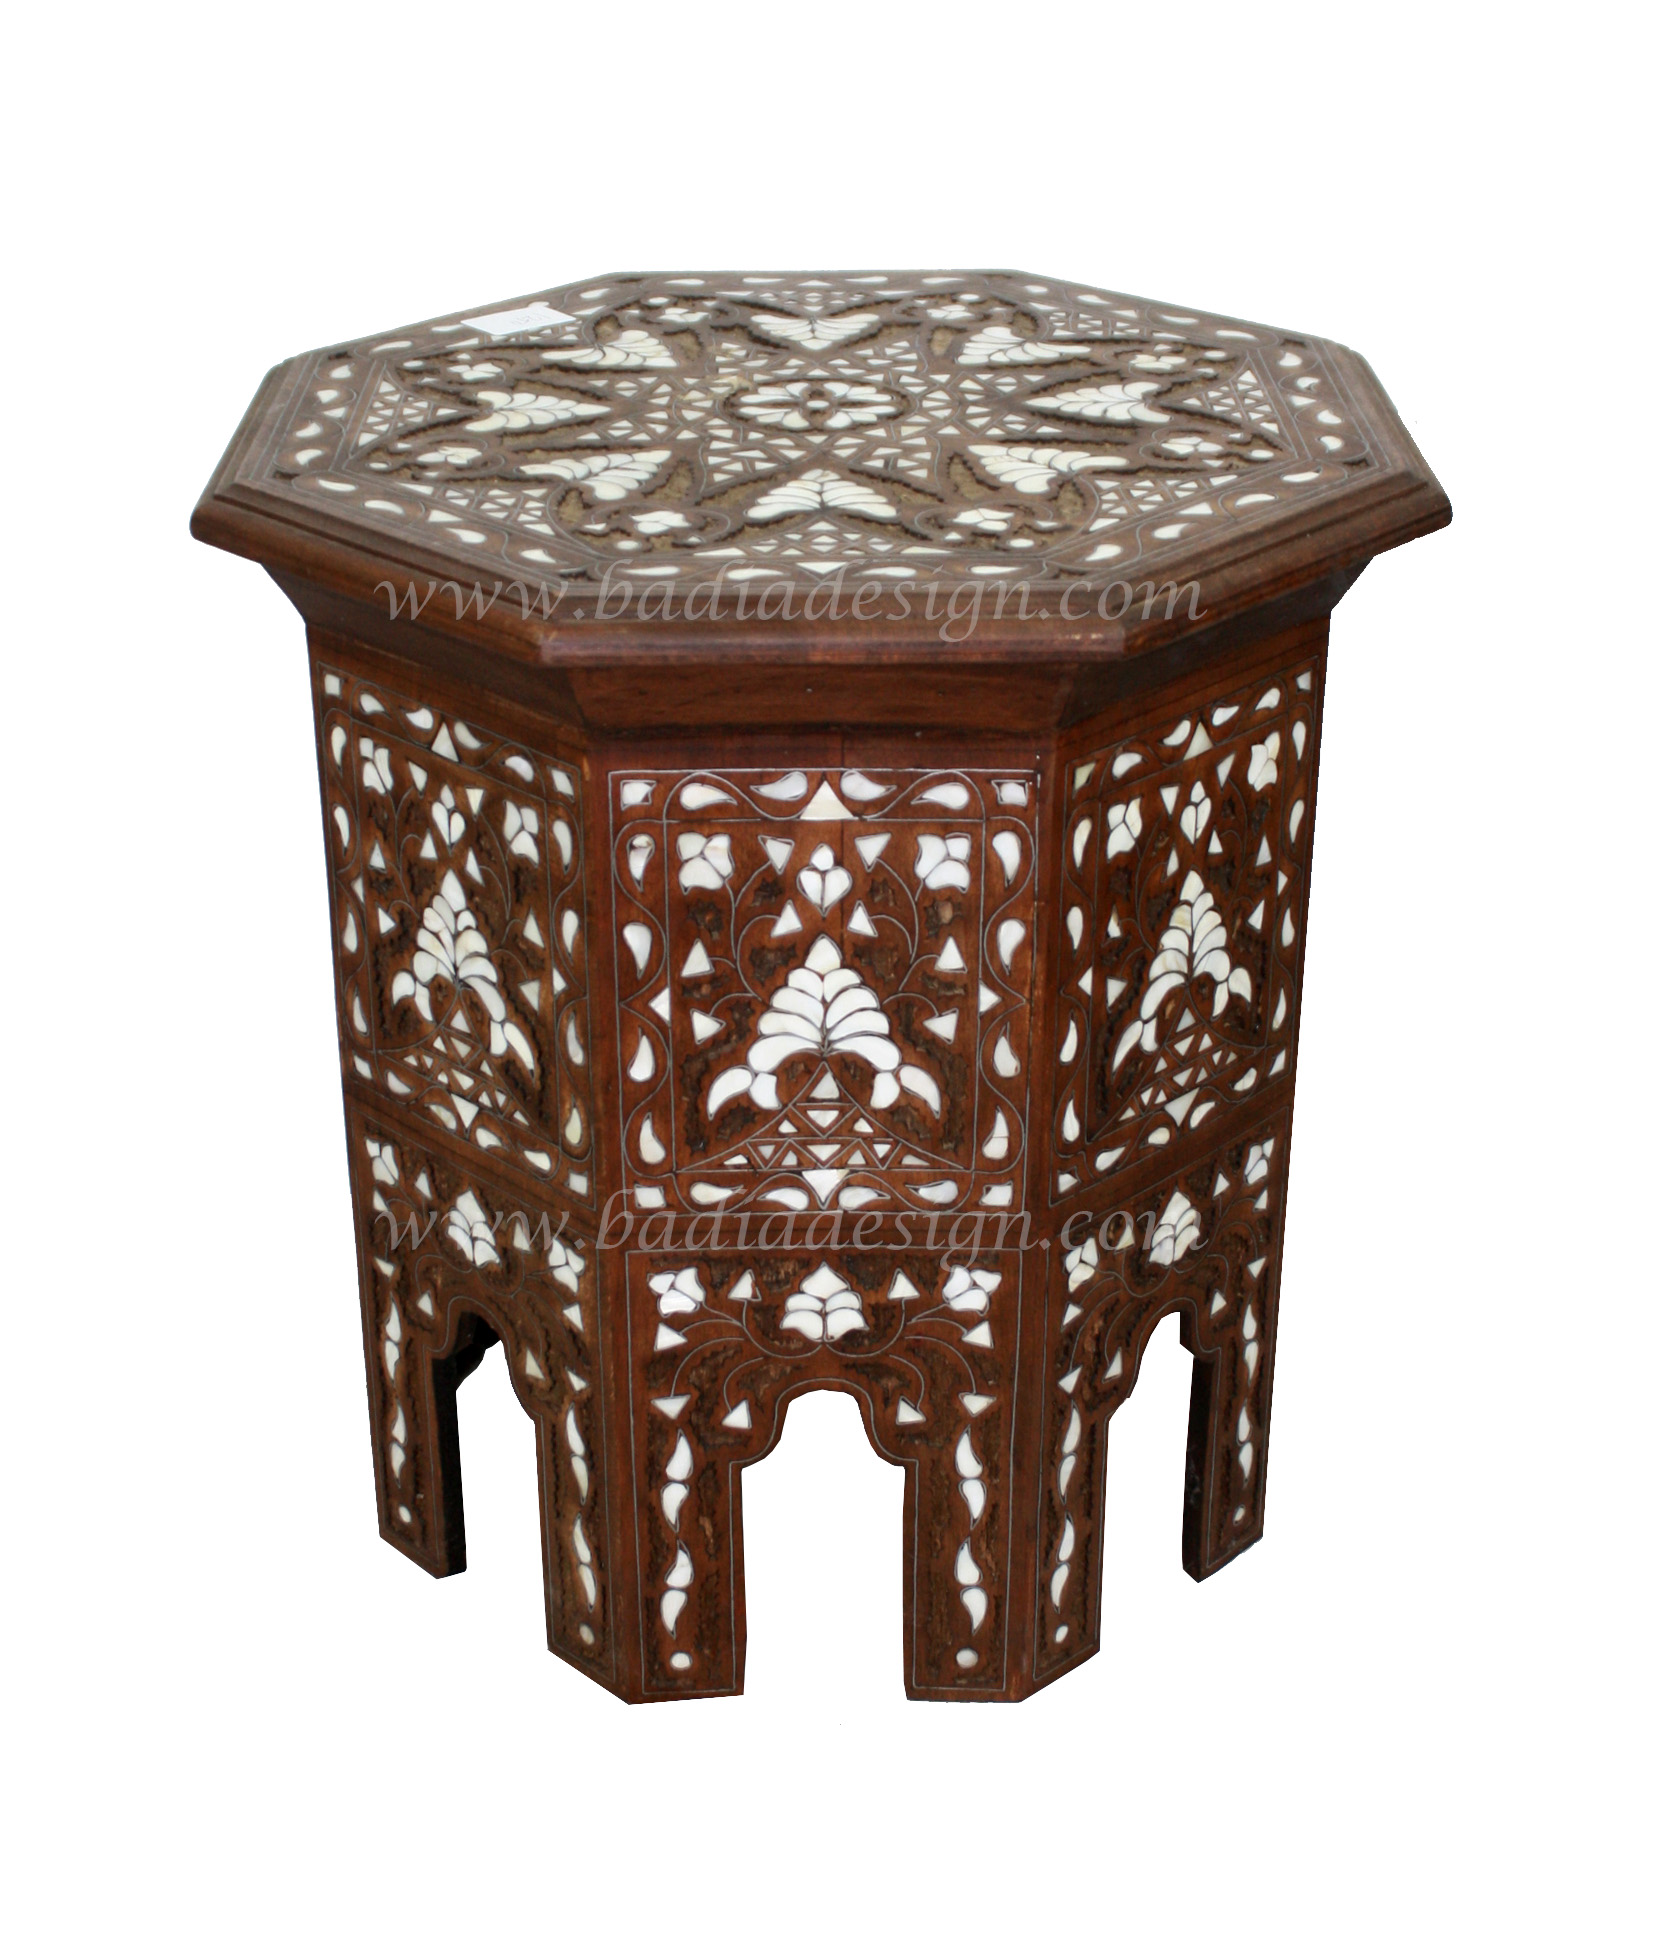 white-mother-of-pearl-side-table-mop-st041-1.jpg